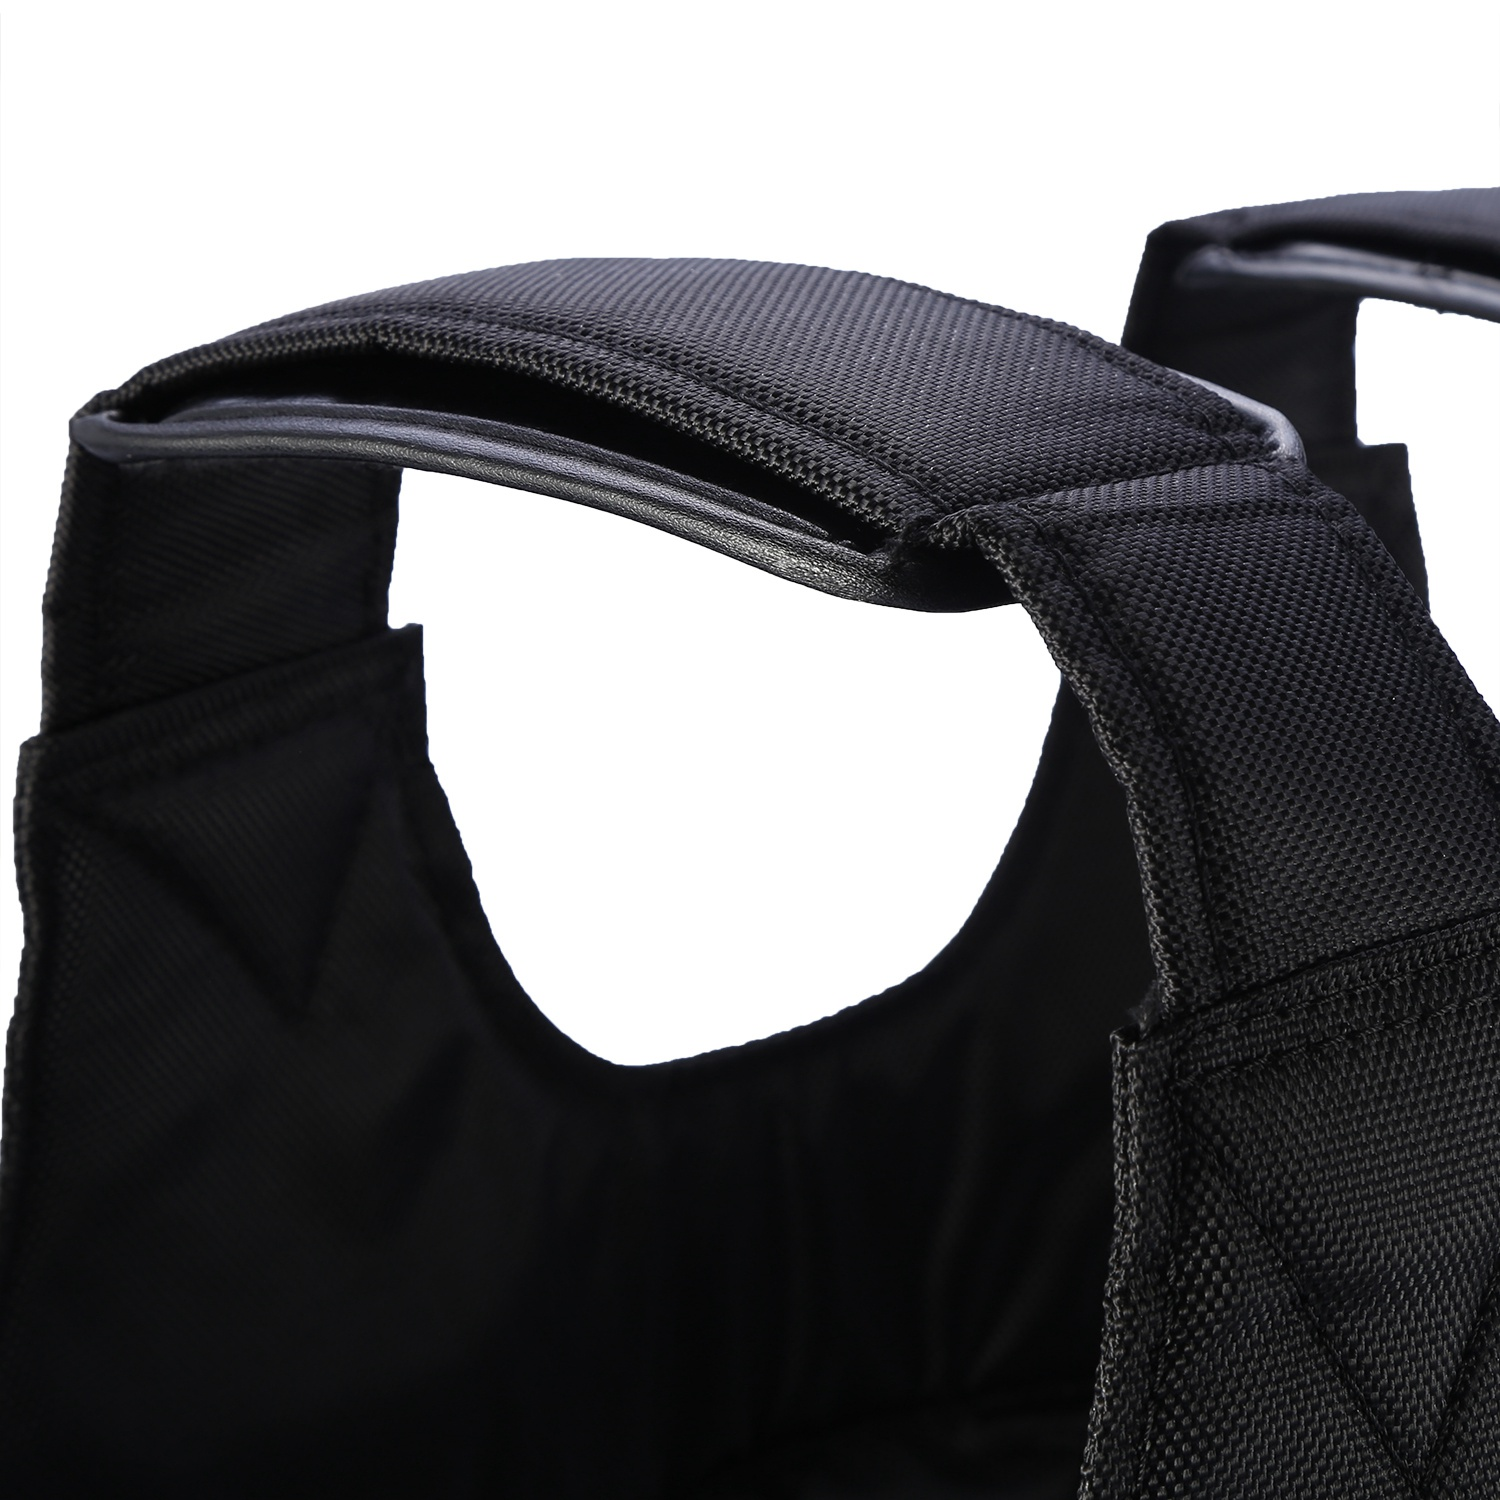 Weighted-Vest-44-110lbs-Weight-Workout-Exercise-Body-Training-Crossfit-Equipment thumbnail 17